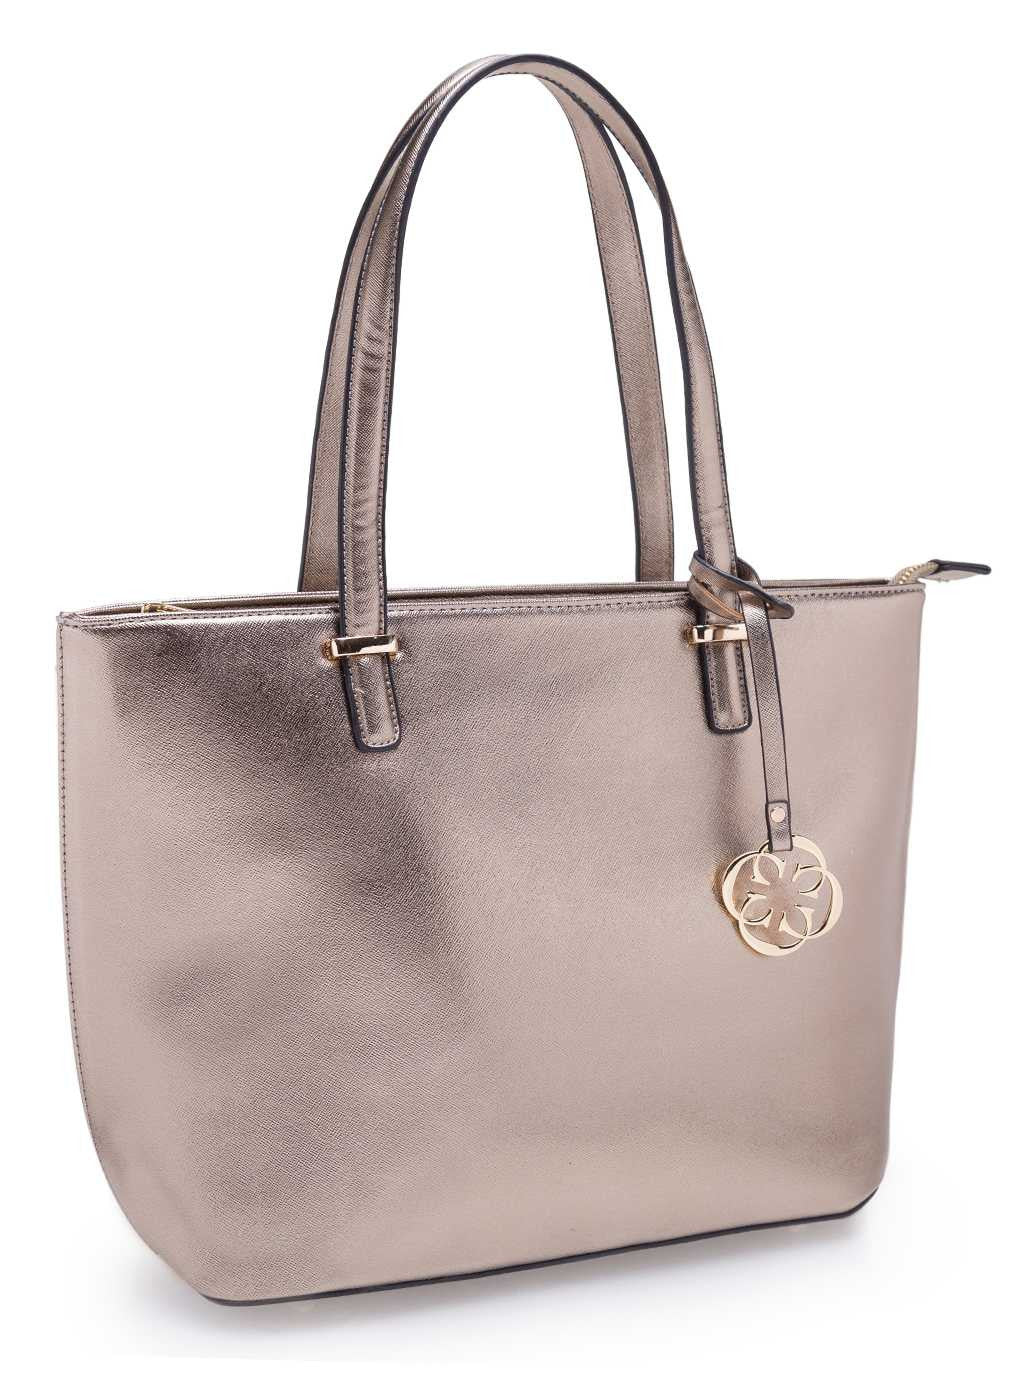 Serra Embellished Tote Bag